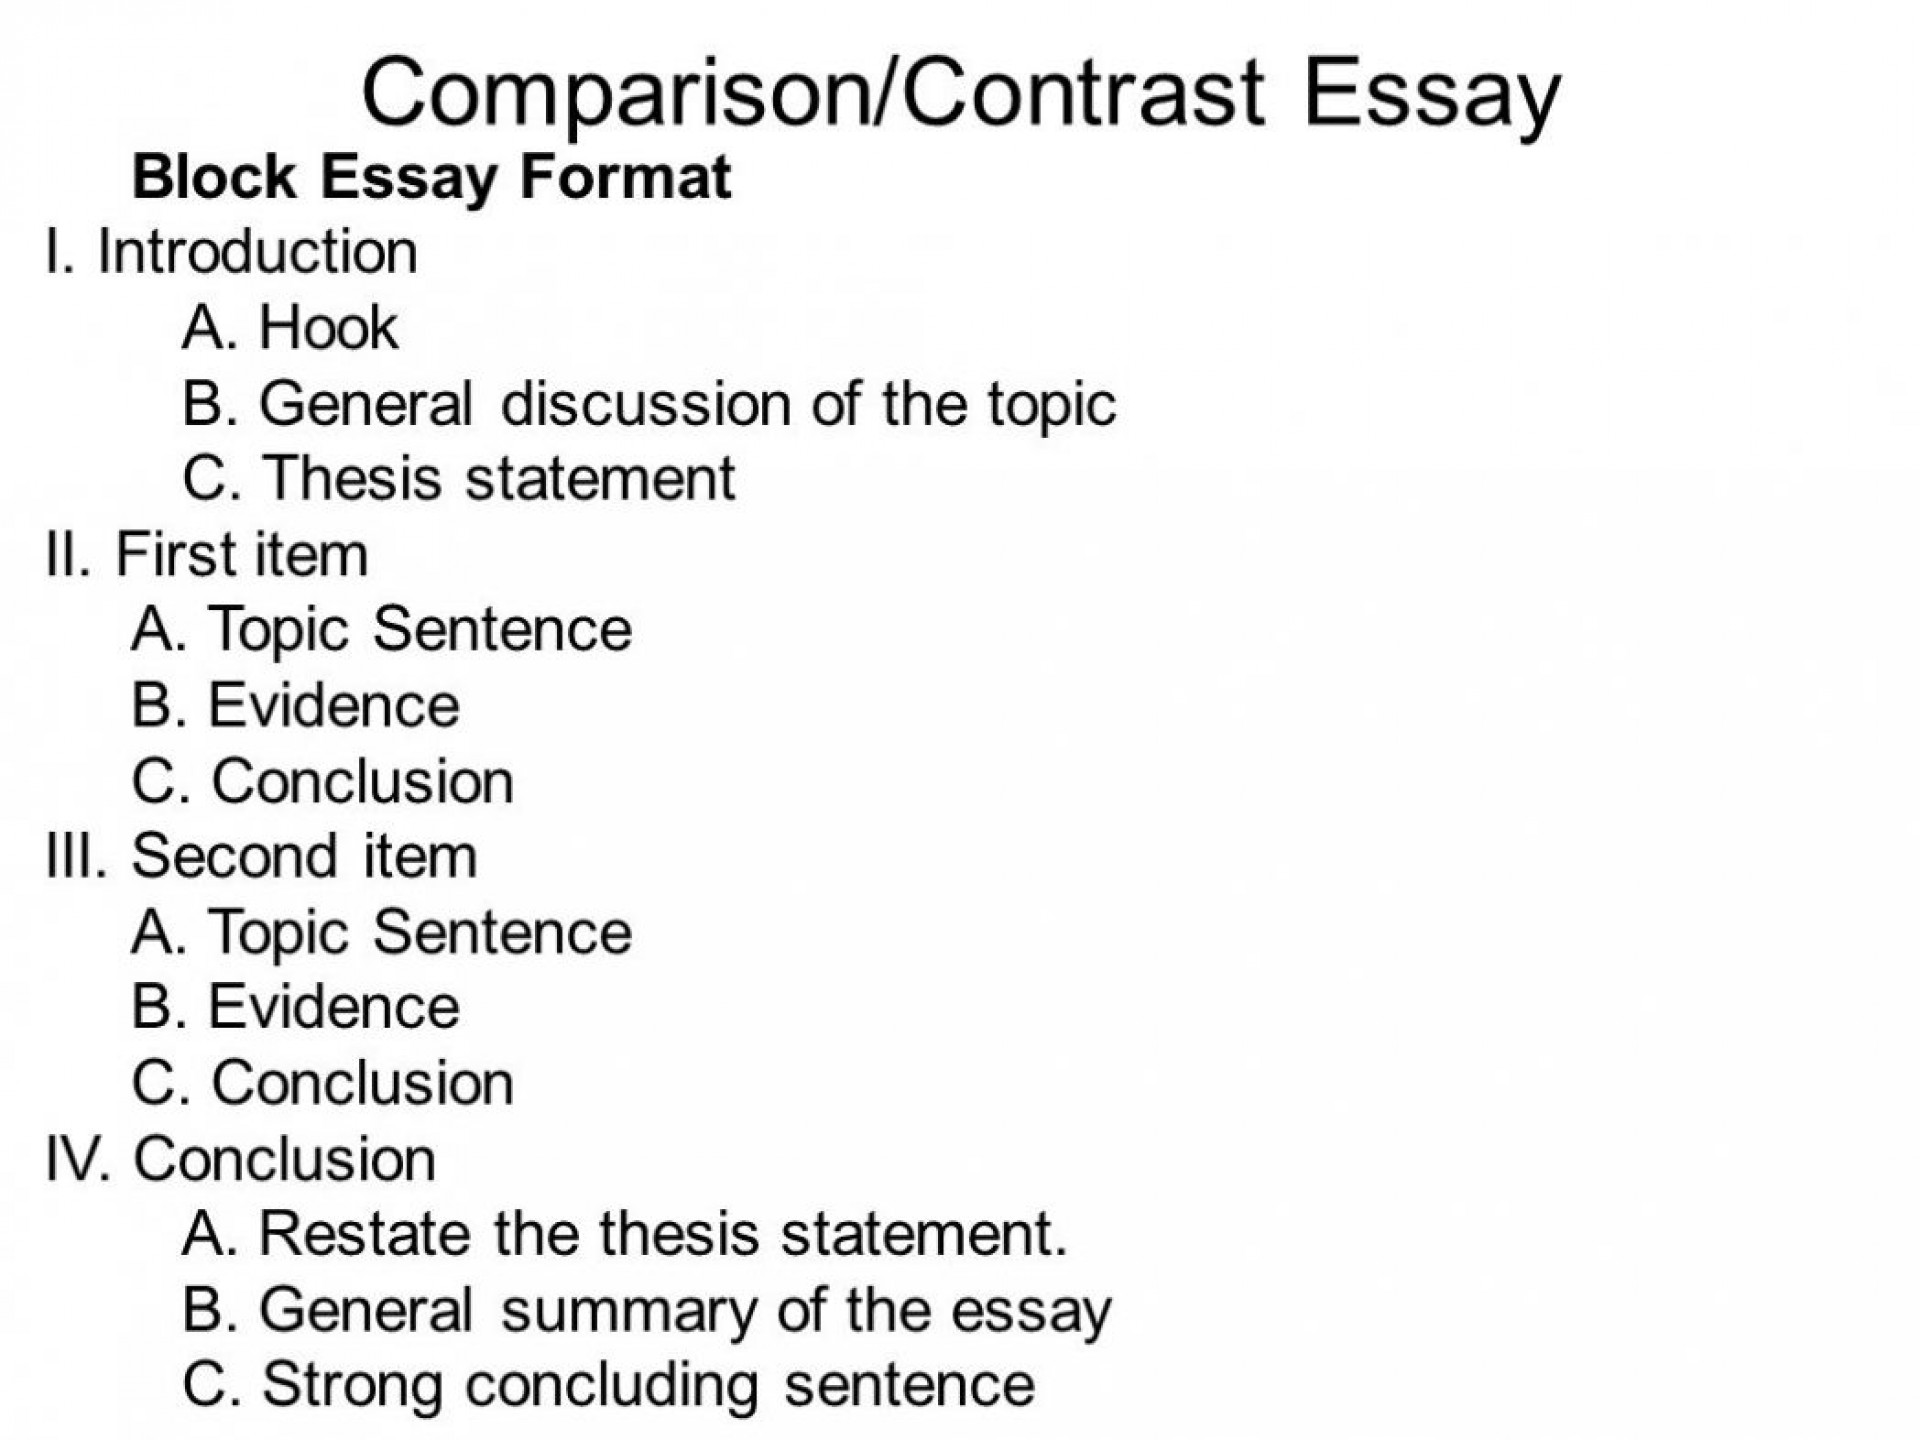 027 How To Write Hook For An Essay Start Contrast Compare And Format Starting Sentences Persuasive Sli Phrases Words Hooks Introduction Conclusion Examples With Quote Ways Of Surprising A Expository Analytical Argumentative Example 1920